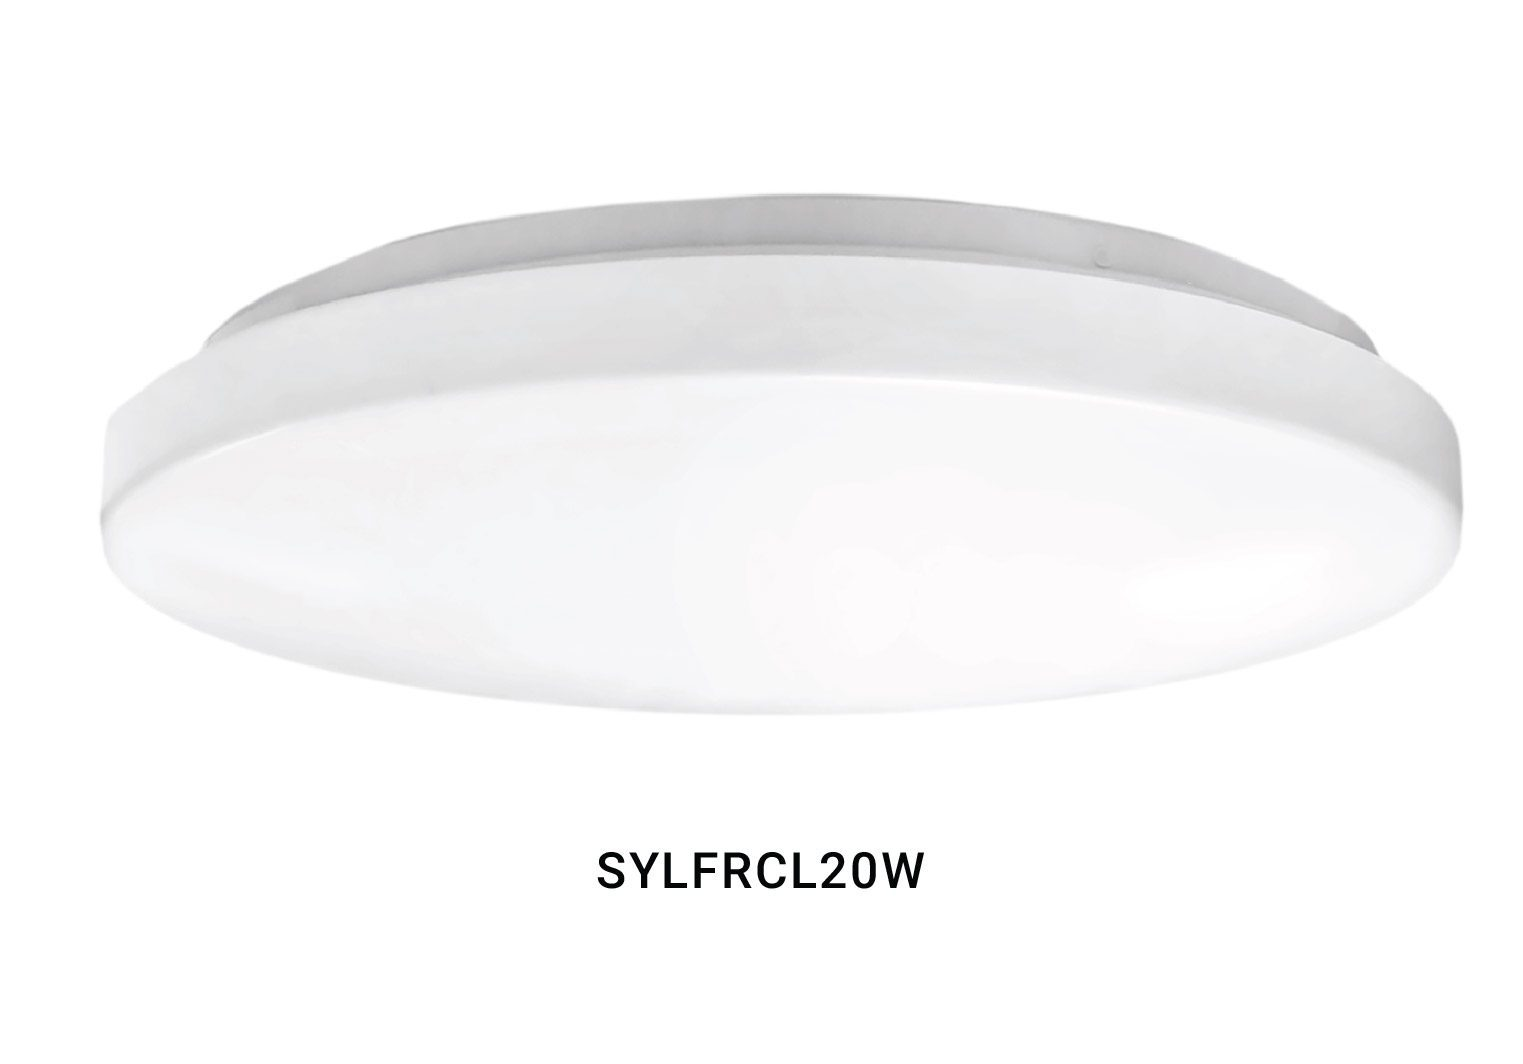 SYLFRCL20W WHITE CEILING FITTING